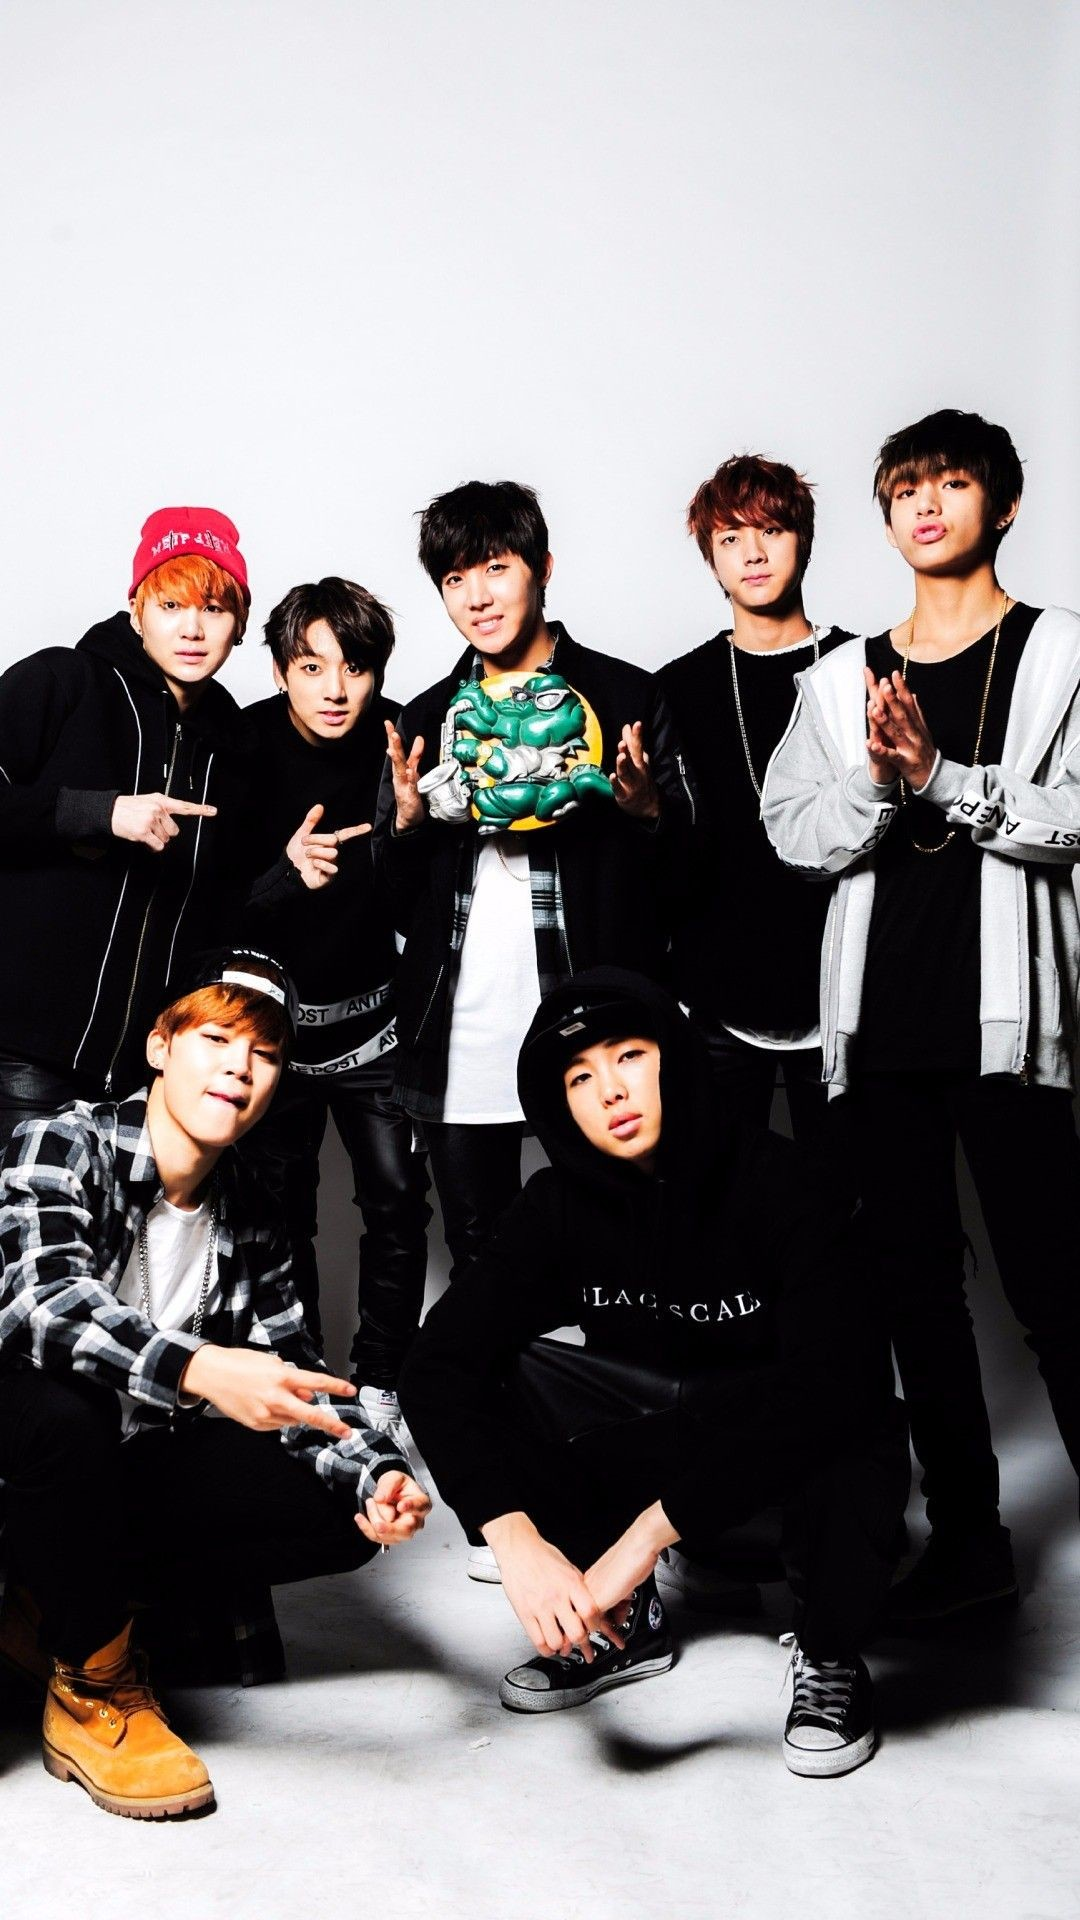 1080x1920  Download Kpop BTS Bangtan Boys 1080 x 1920 Wallpapers - 4617327 - BANGTAN  BOYS BTS